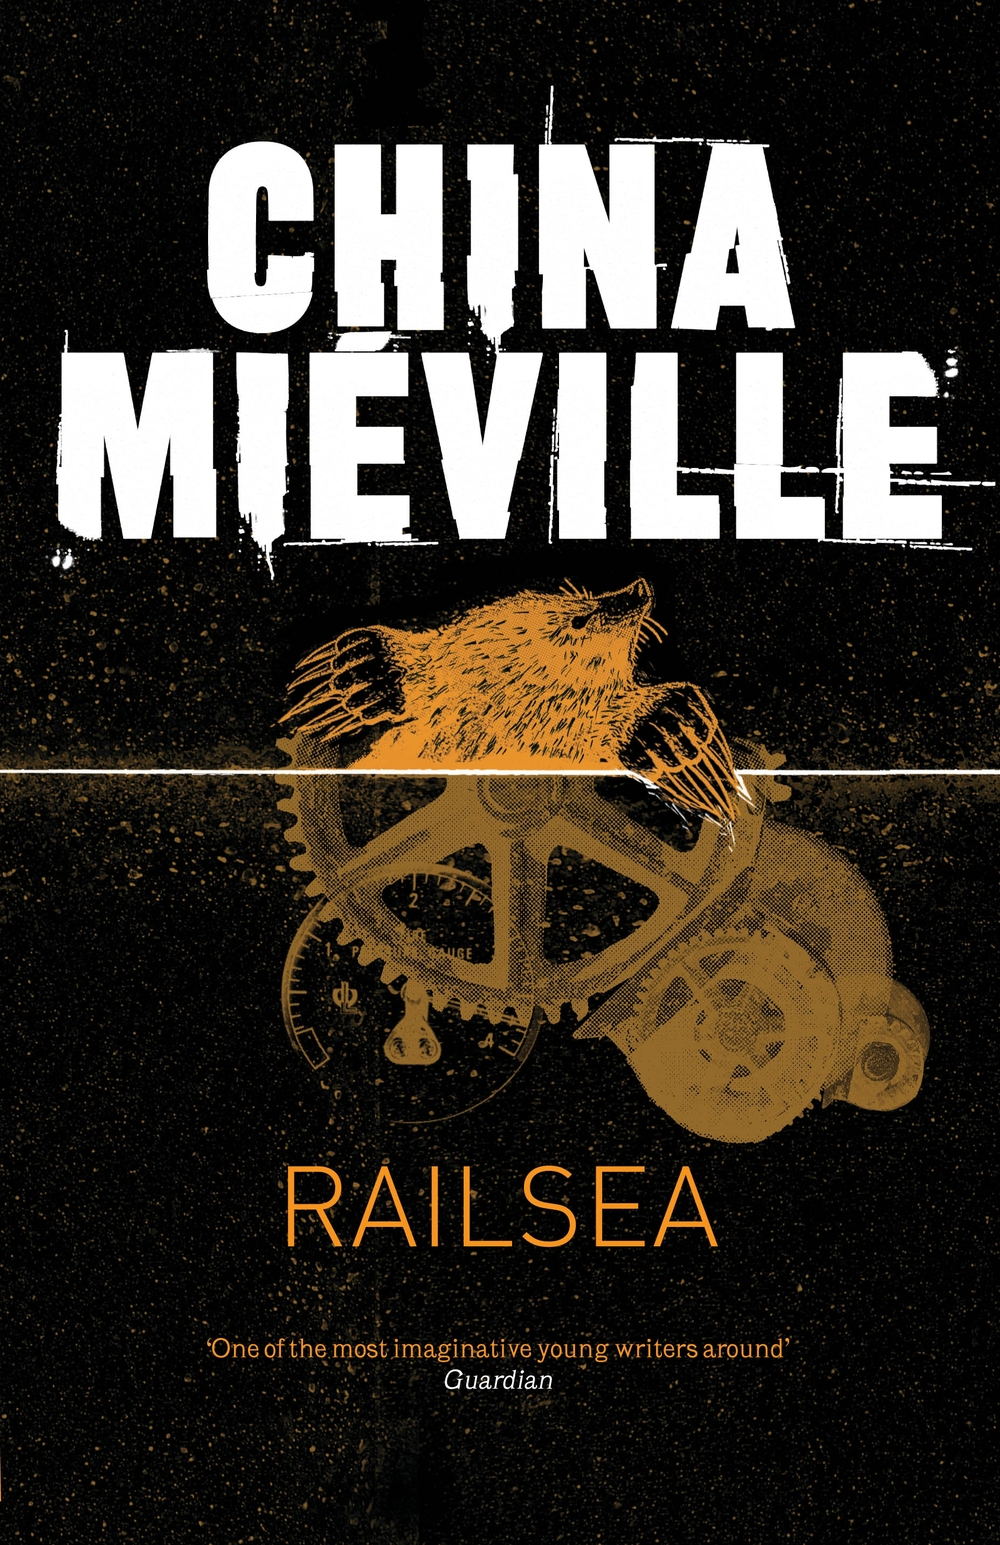 Railsea: cover art by Crushed.co.uk; in-house designer Neil Lang